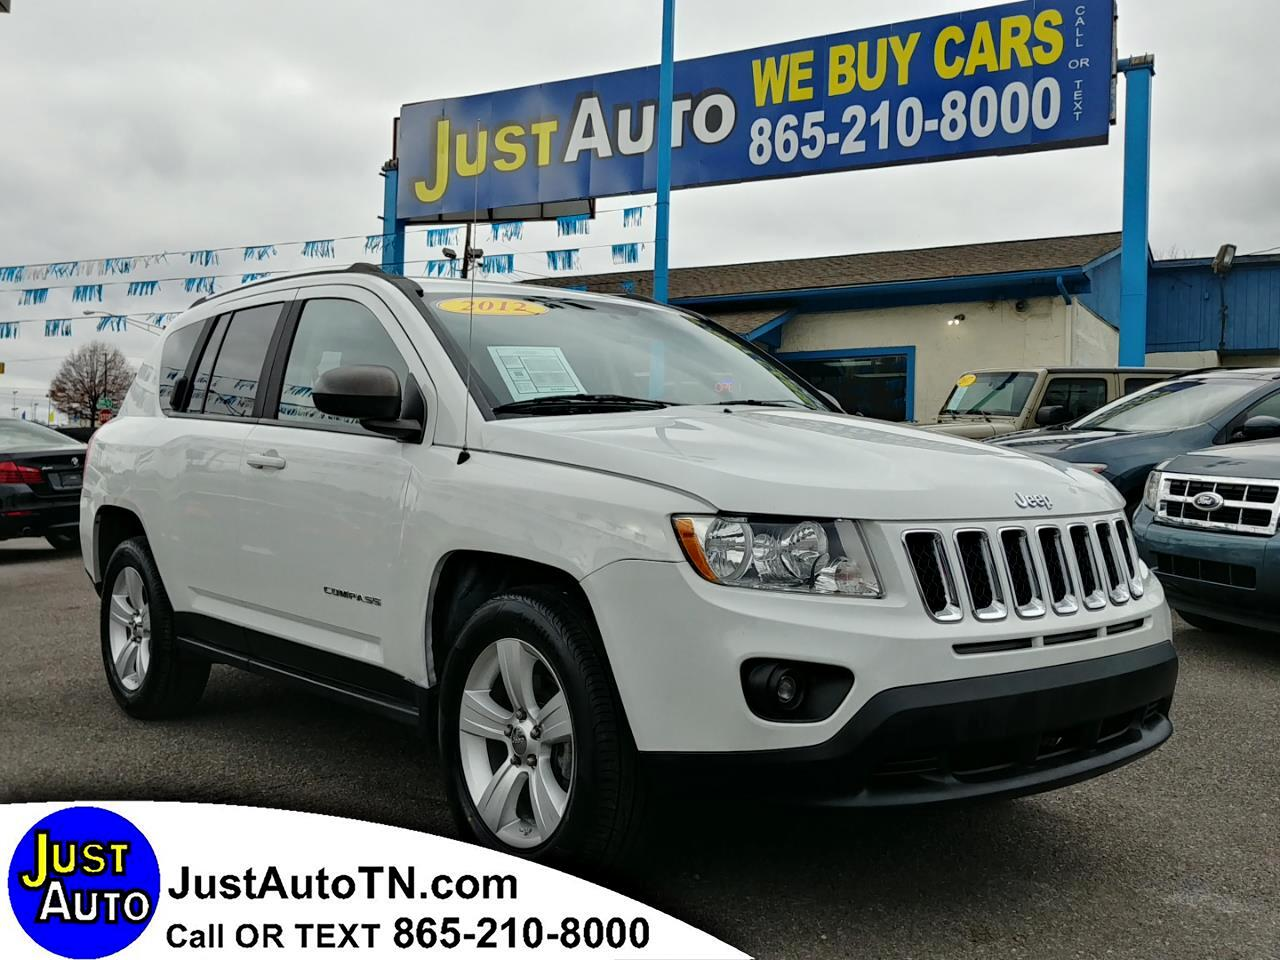 used 2012 jeep compass fwd 4dr sport for sale in knoxville tn 37912 just auto leasing. Black Bedroom Furniture Sets. Home Design Ideas